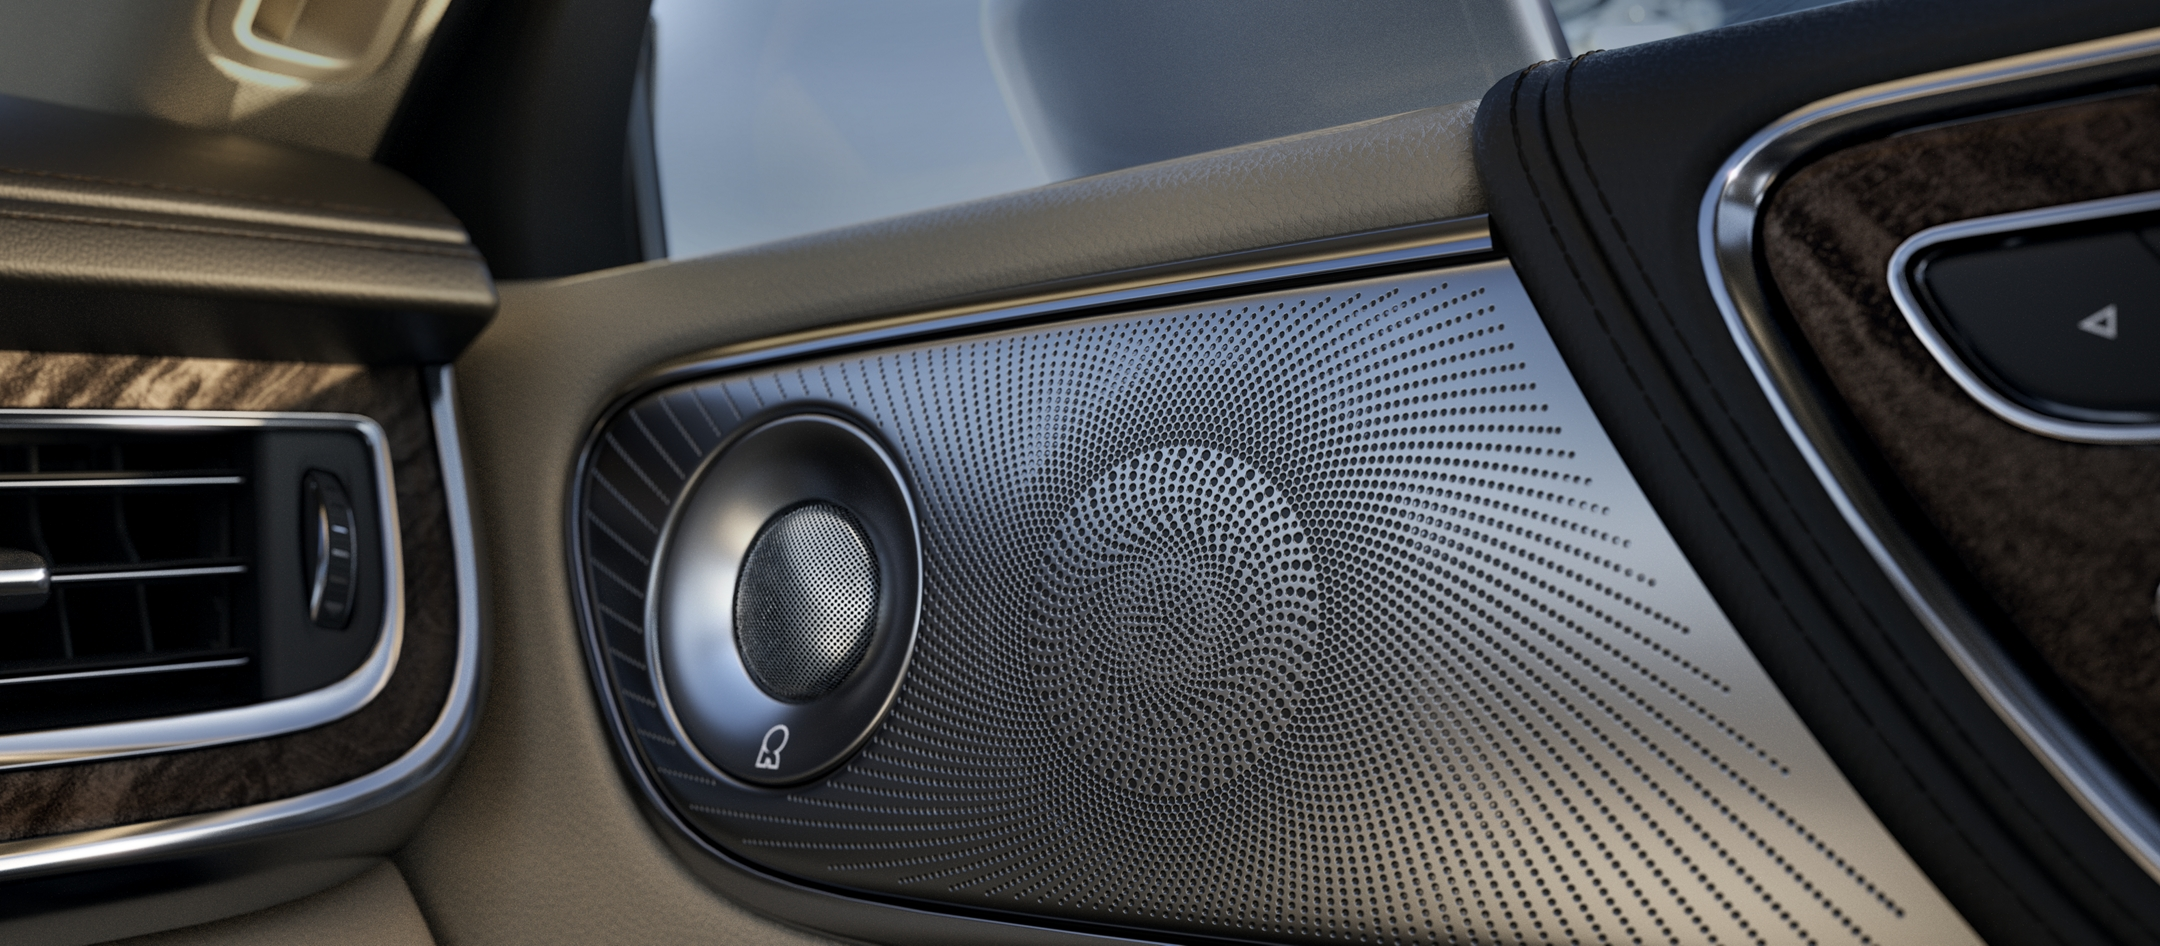 An available Revel Ultima Audio Sound system speaker is seen in a door of the Lincoln Continental